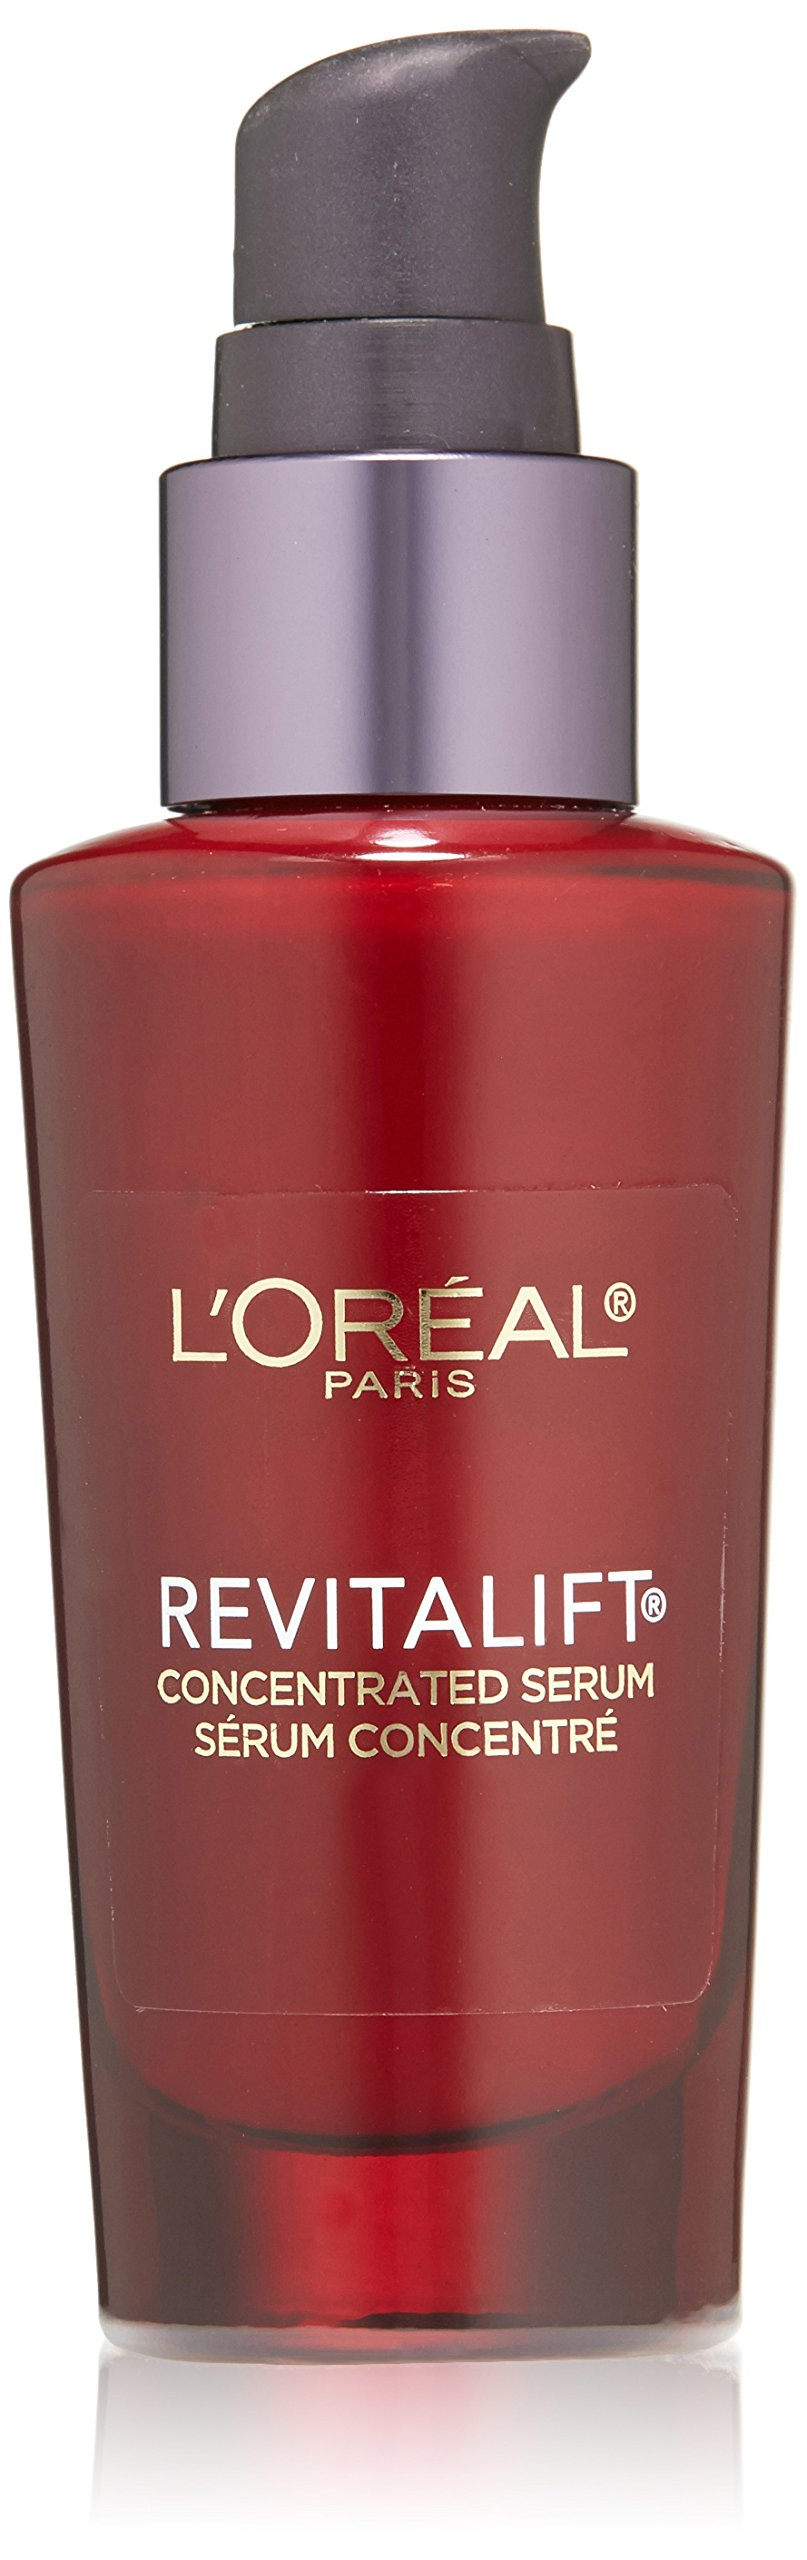 L'Oréal Paris Revitalift Triple Power Concentrated Serum Treatment, 1 fl. oz.